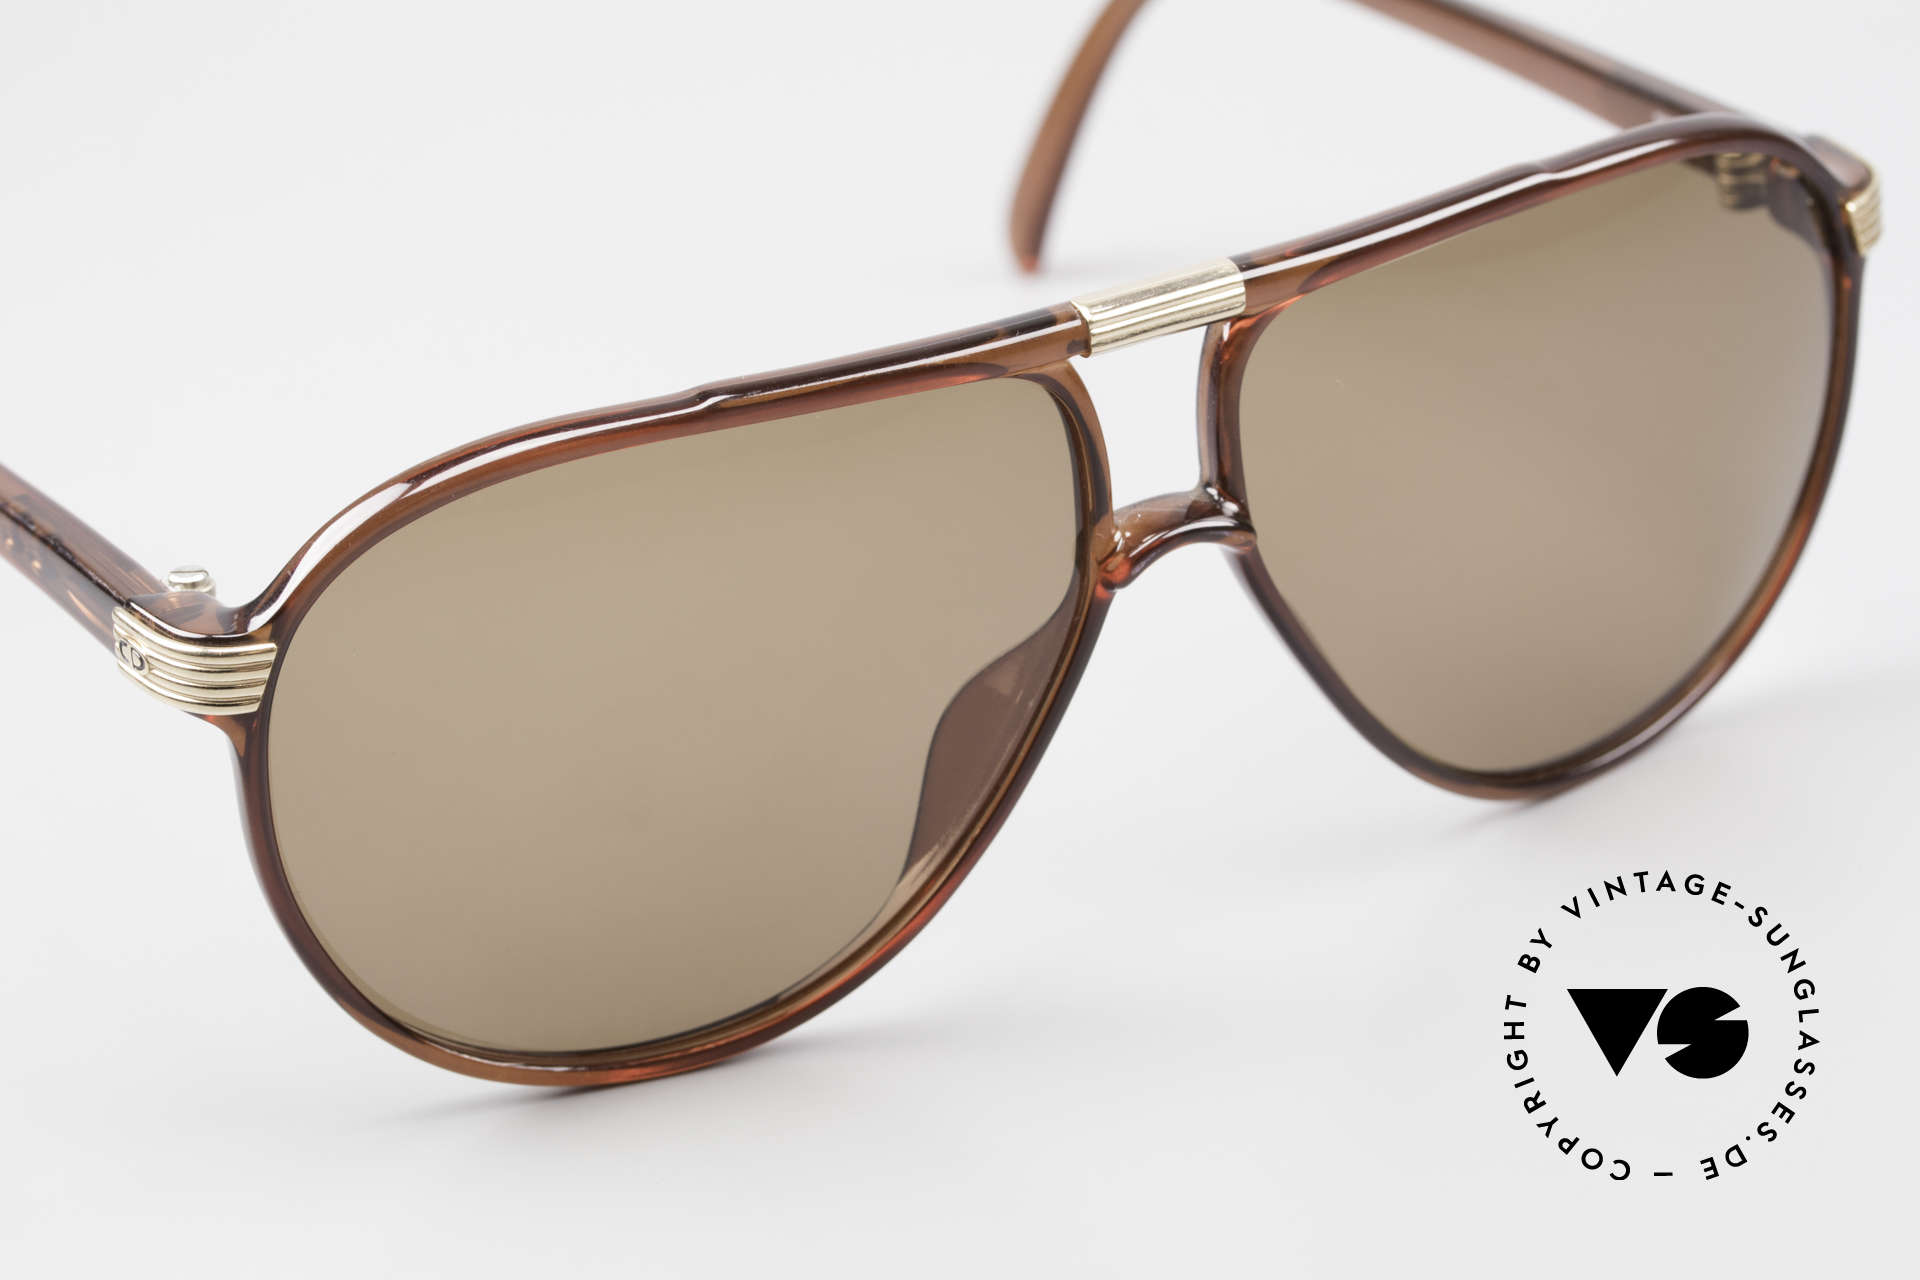 Christian Dior 2300 80's Aviator Sunglasses Optyl, Optyl material does not seem to age (built to last), Made for Men